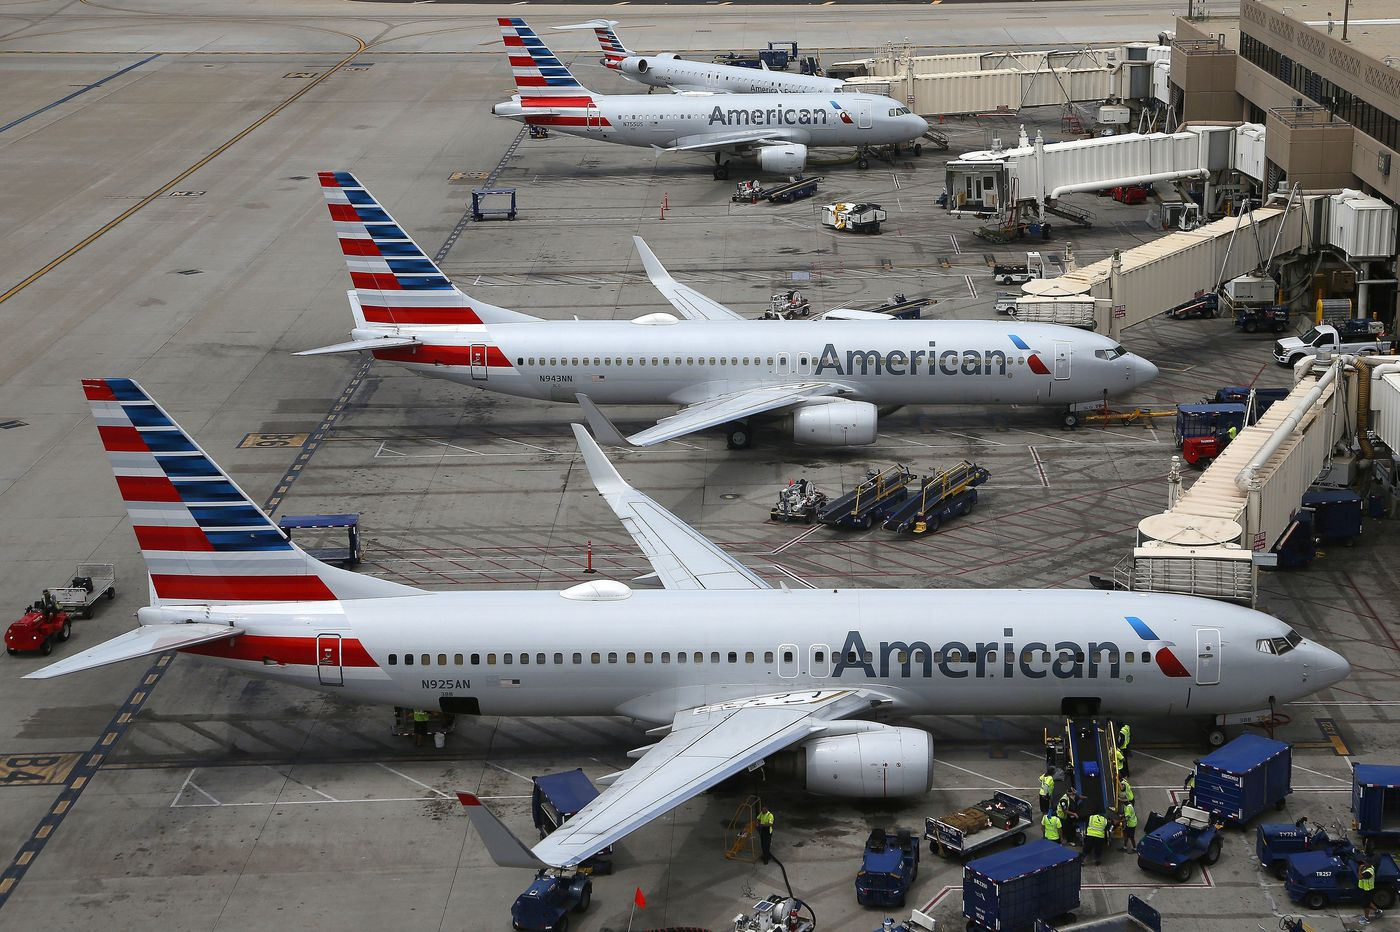 American Airlines Demands Mechanics Unions Pay For